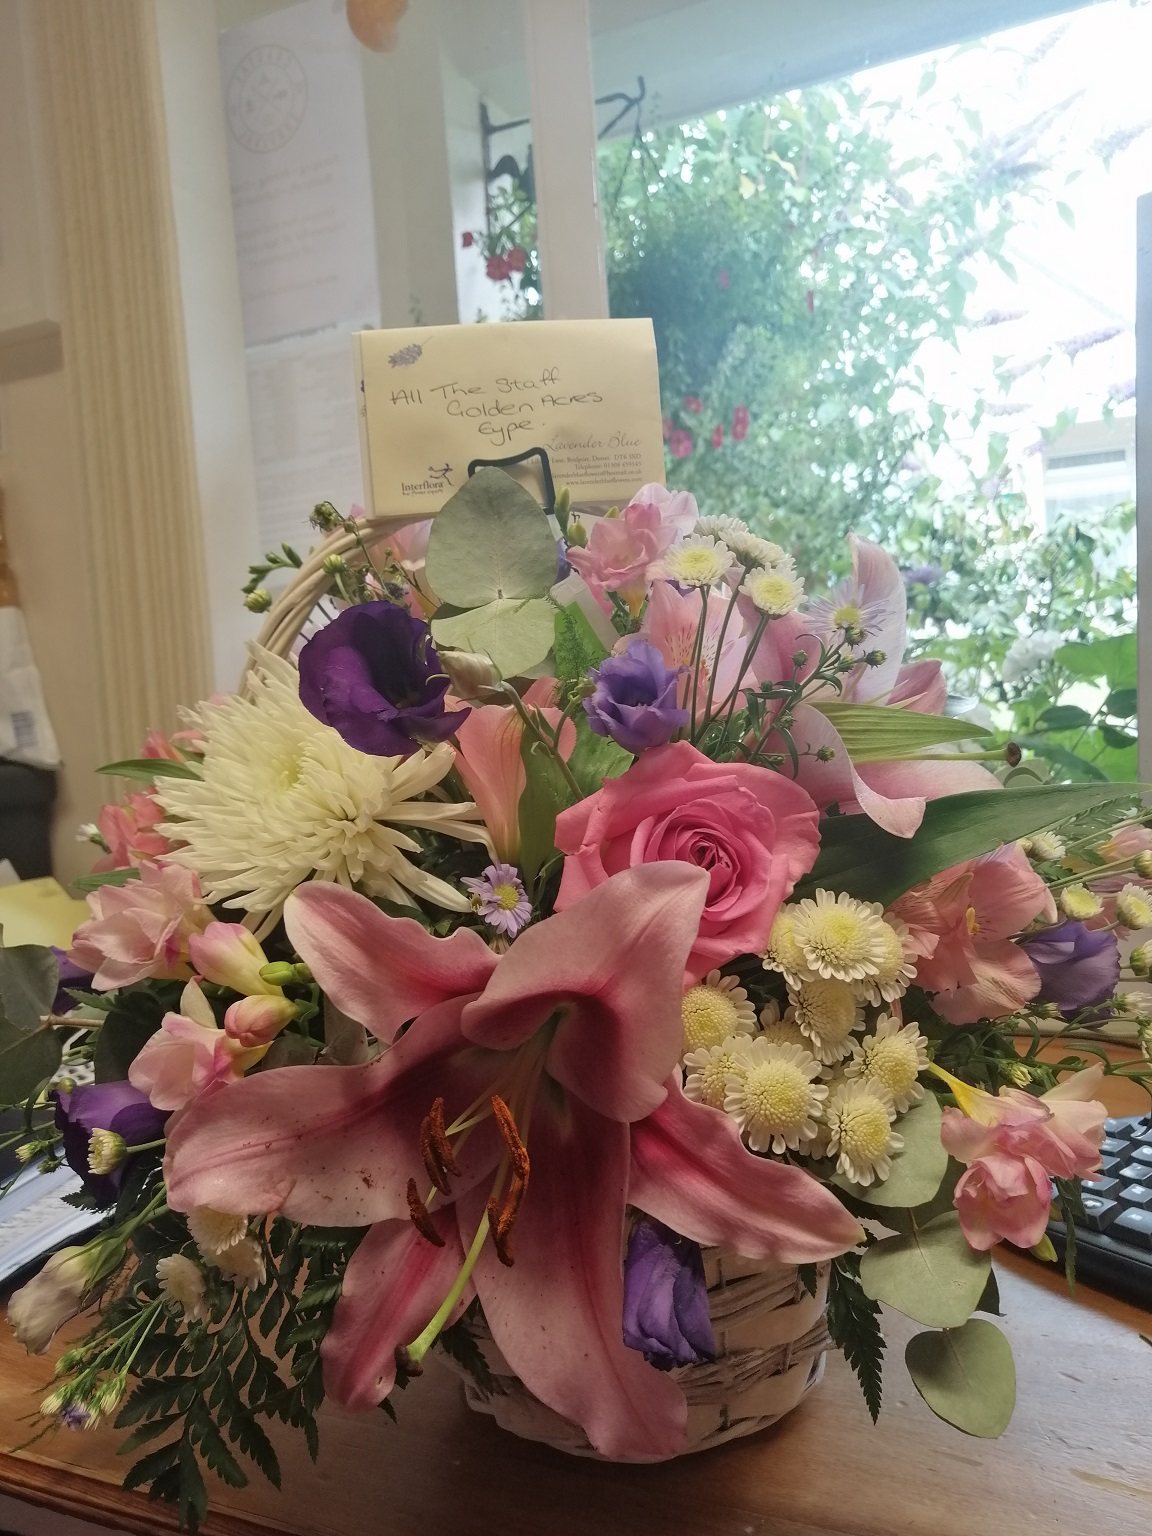 Thank you for the beautiful Flowers!